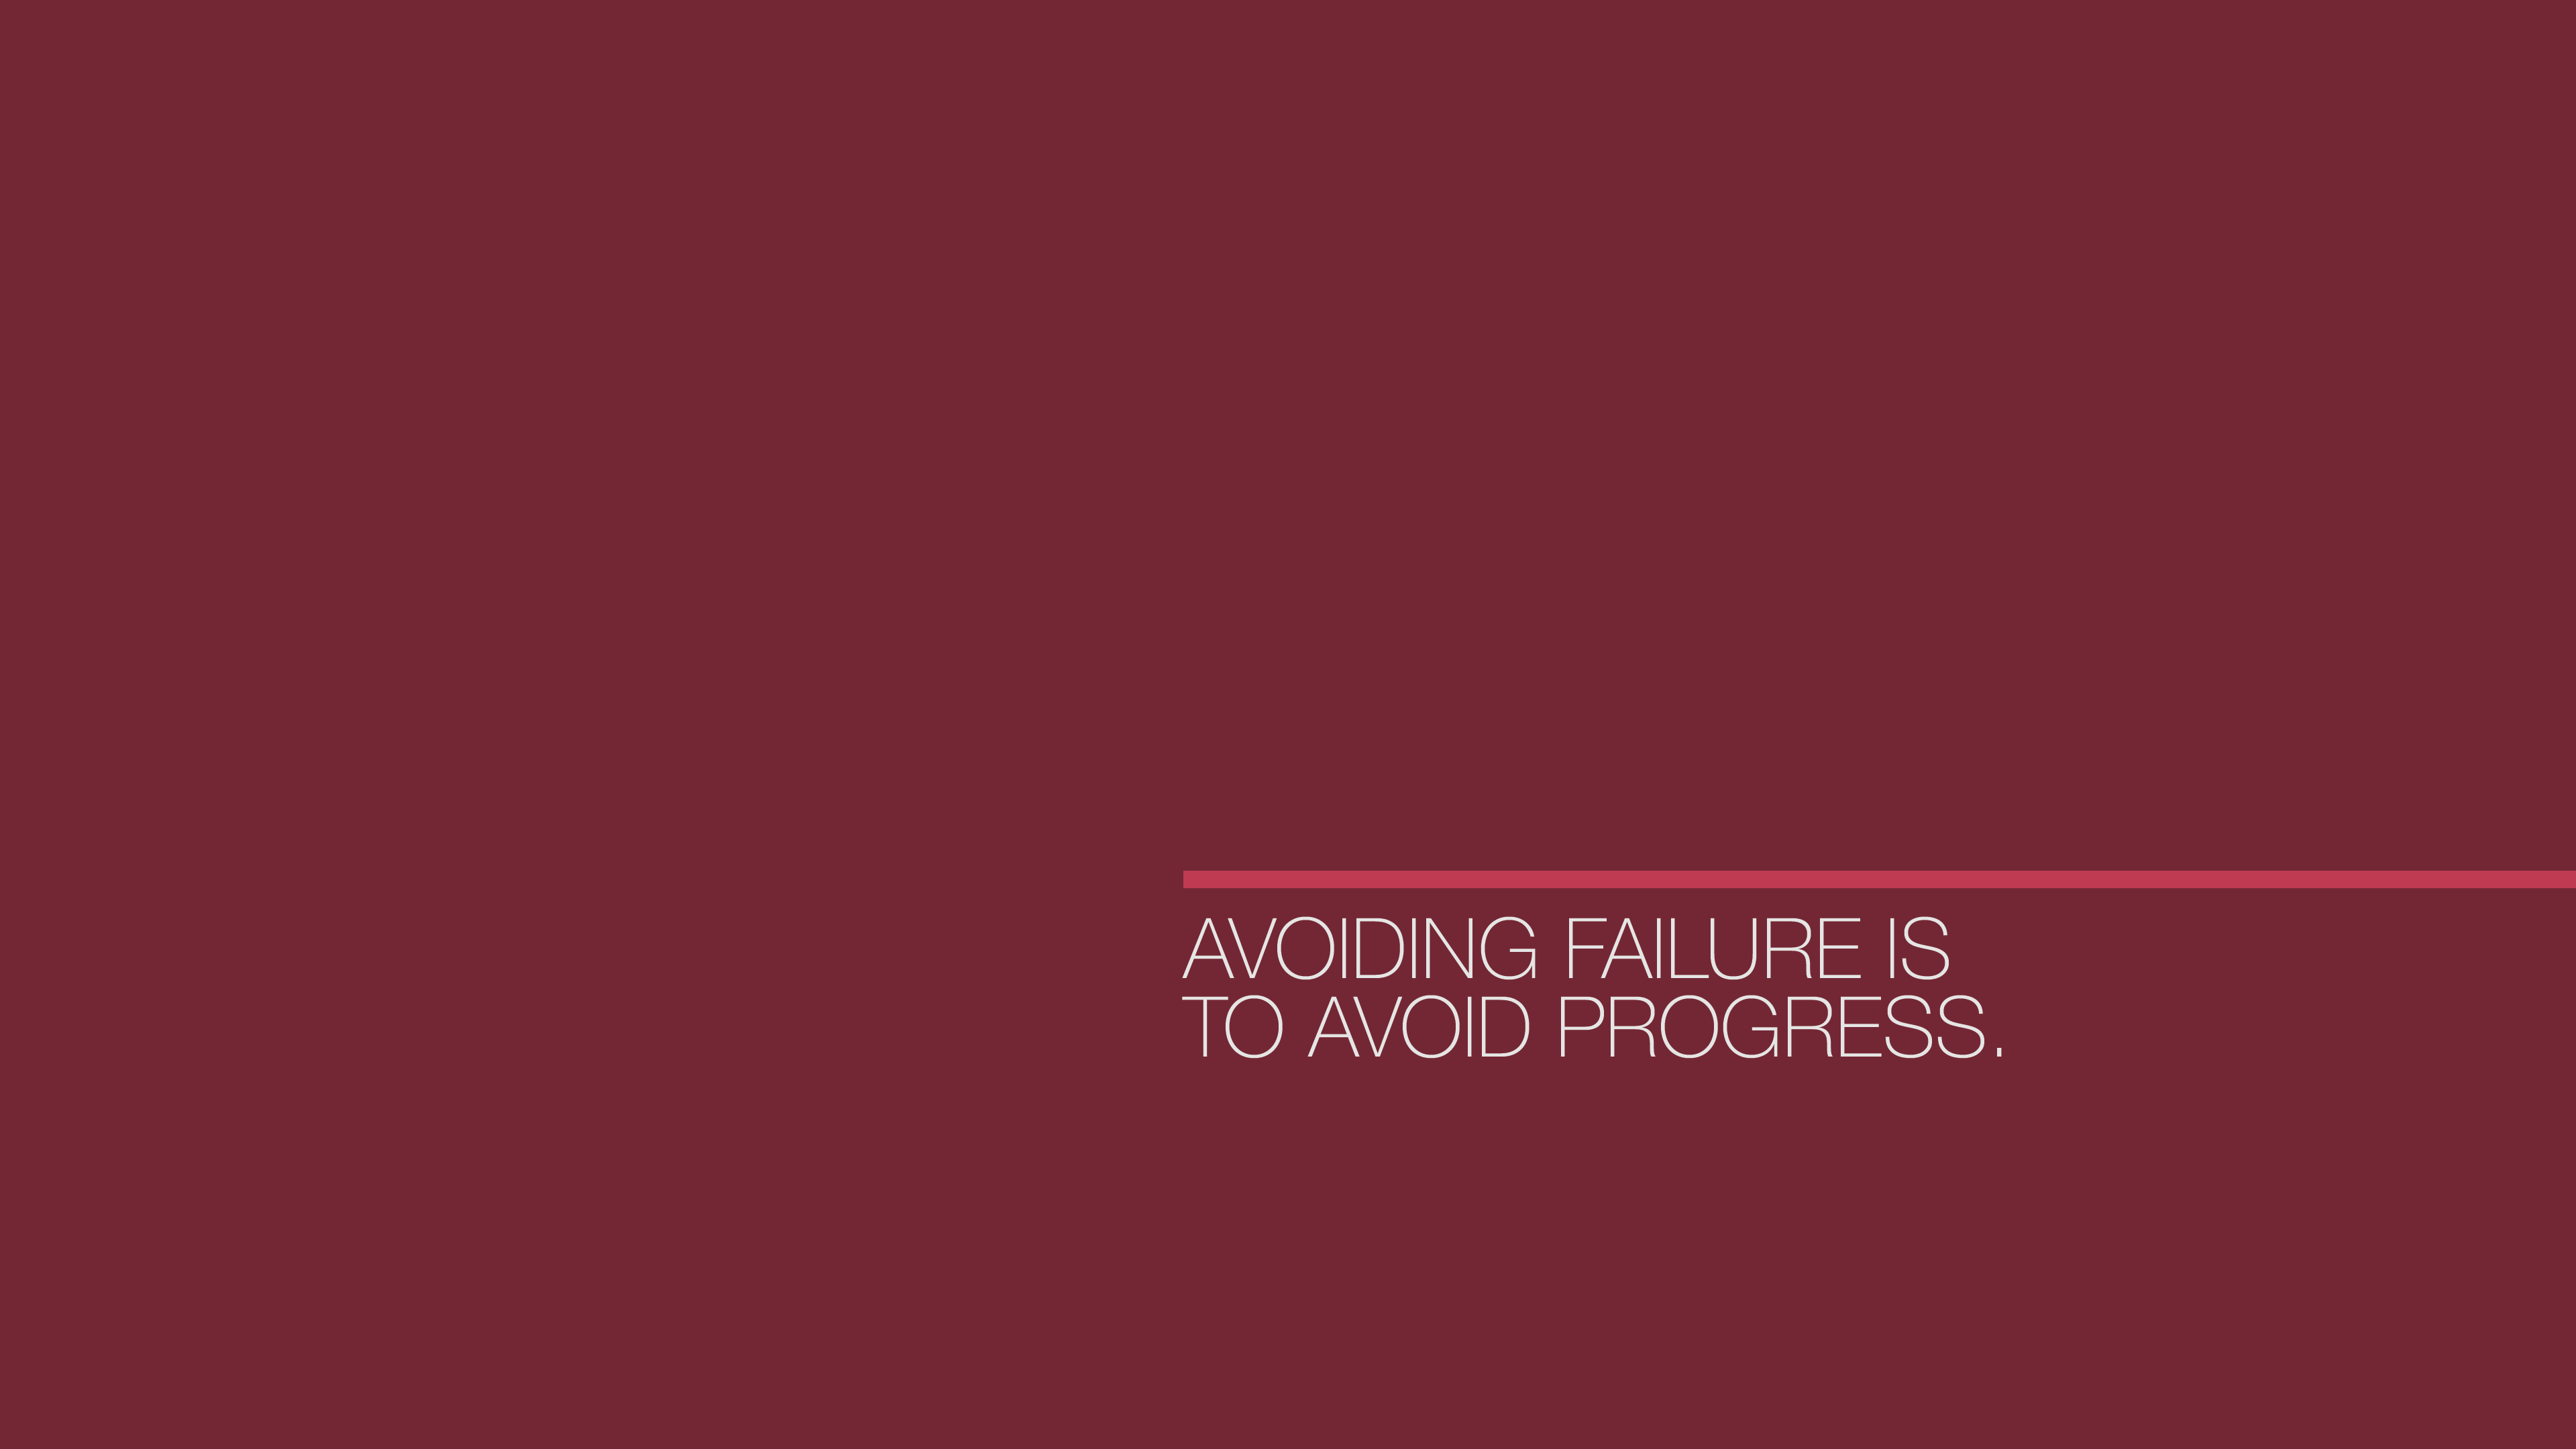 Minimalism Quotes Pictures Wallpapers - Wallpaper Cave